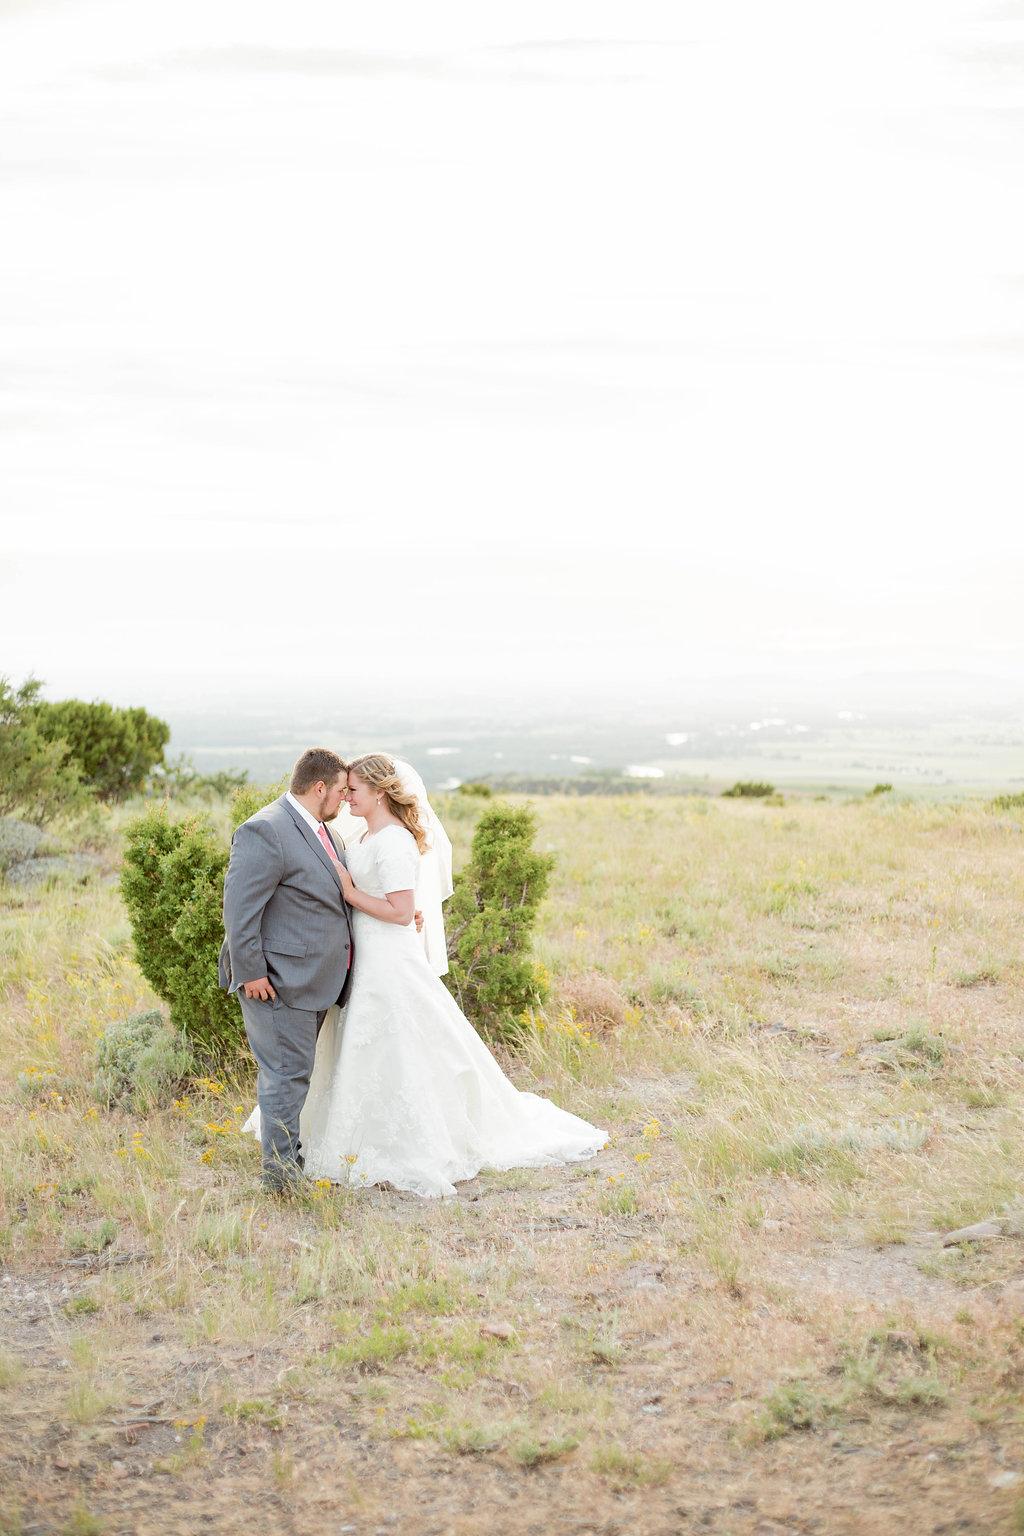 Rexburg, Idaho | Formal Wedding Session | Rexburg LDS Temple | Sarah Tapp Photography